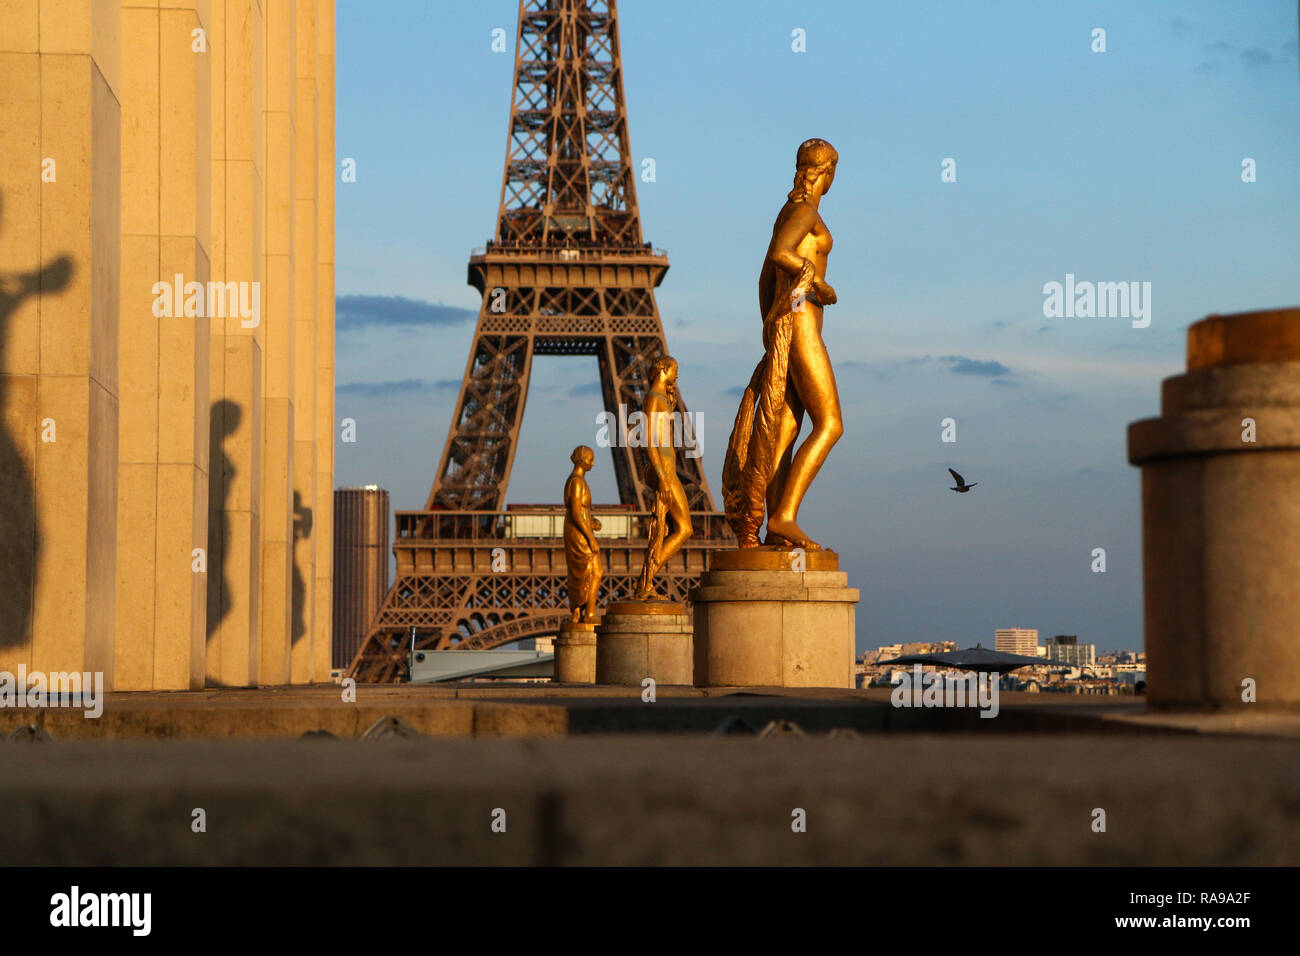 A detail of the statues at Trocadero in Paris. The Eiffel tower is in background. - Stock Image